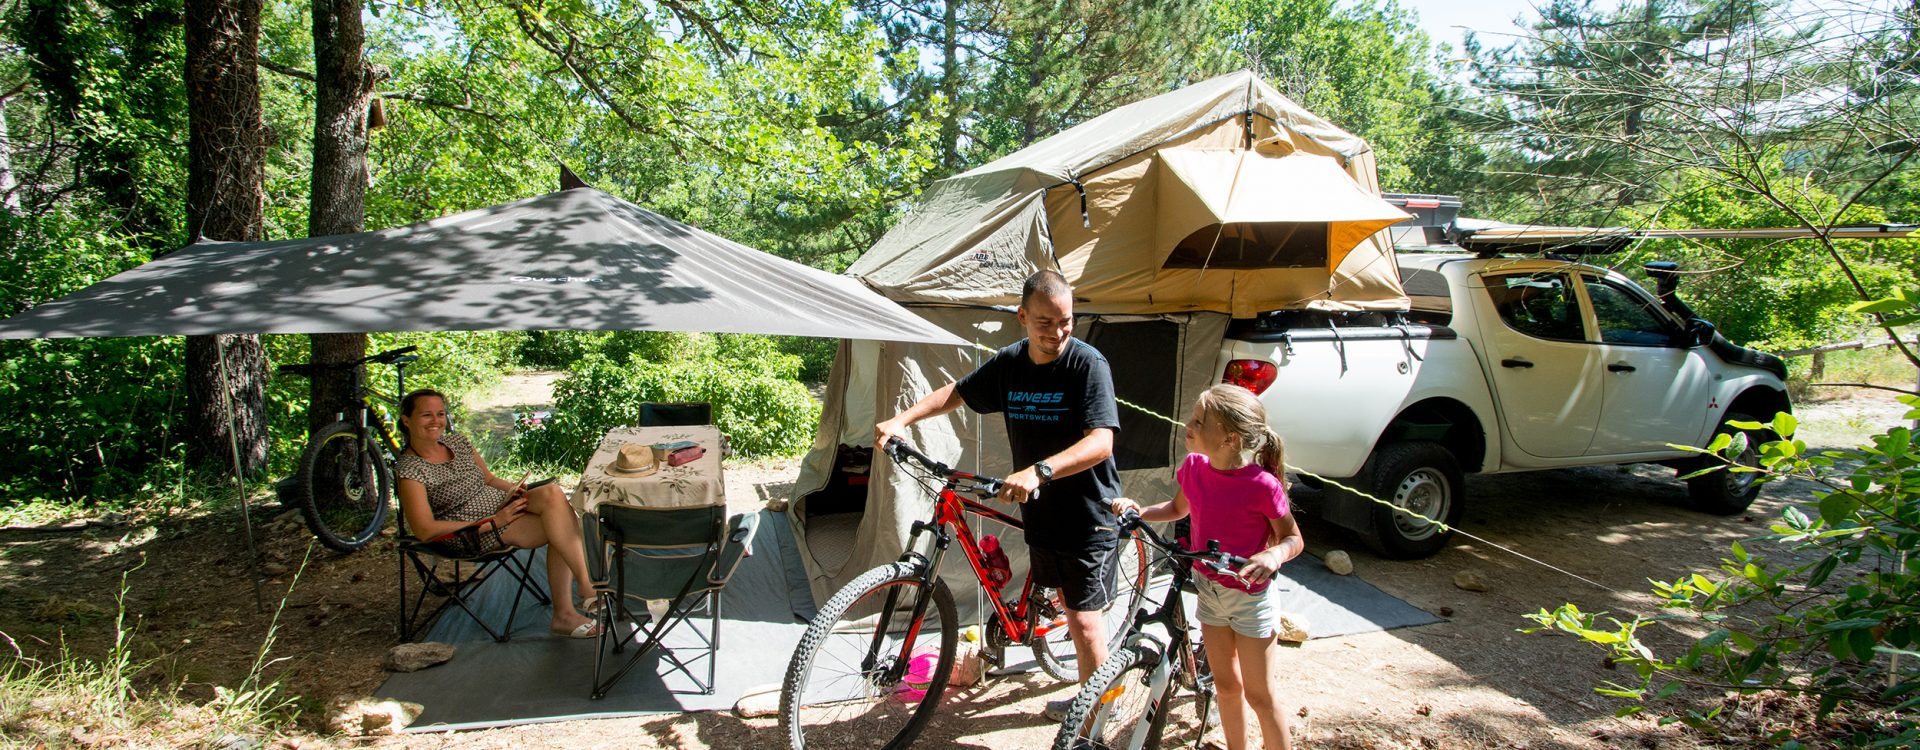 Camping Le Luberon : Diaporama Offres Spéciales